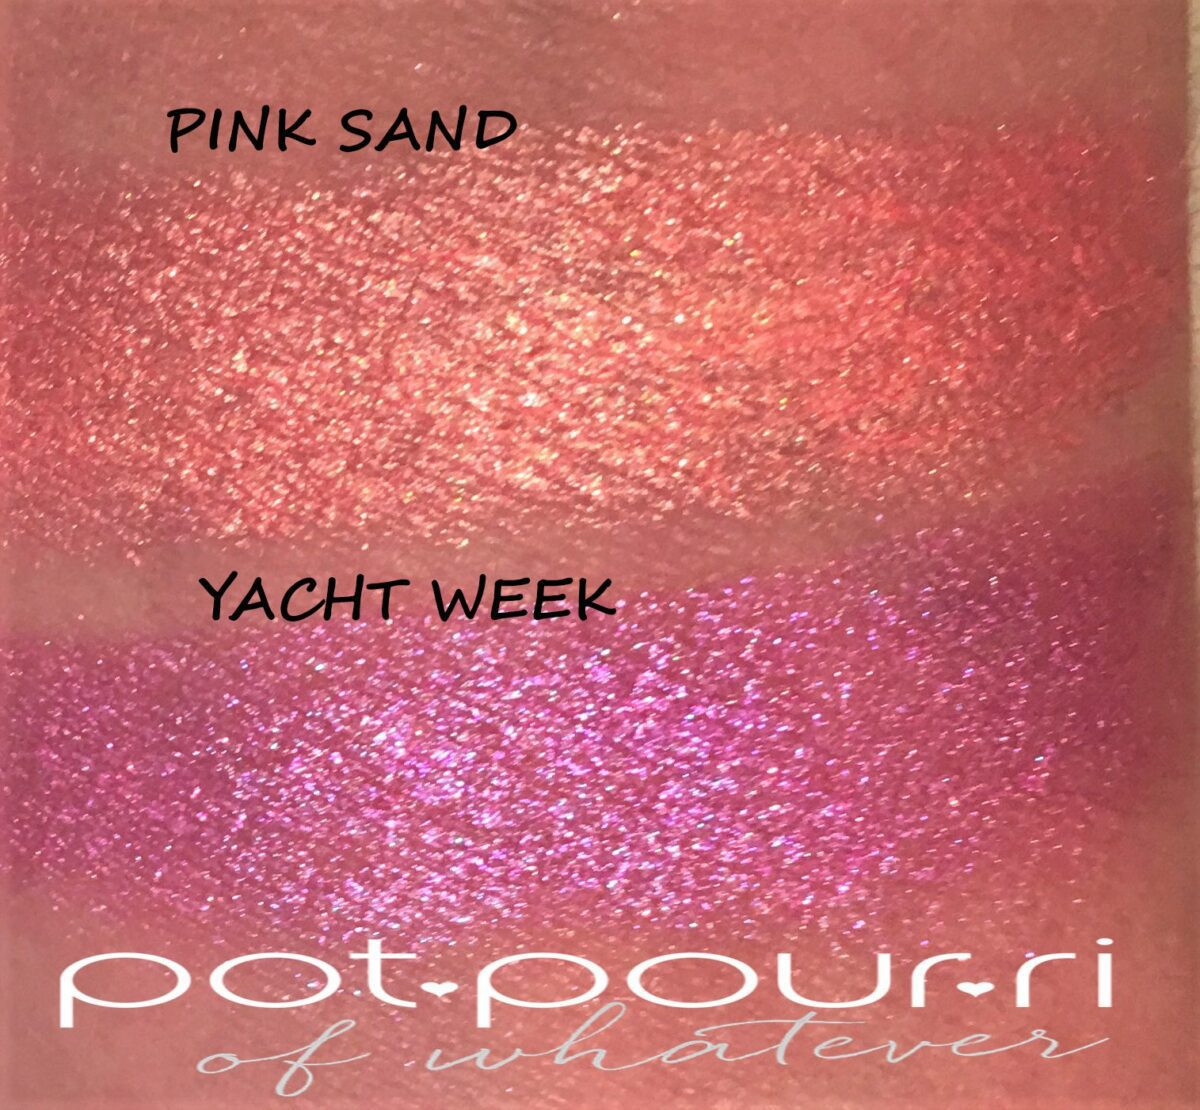 SWATCHES PINK SAND AND YACHT WEEK